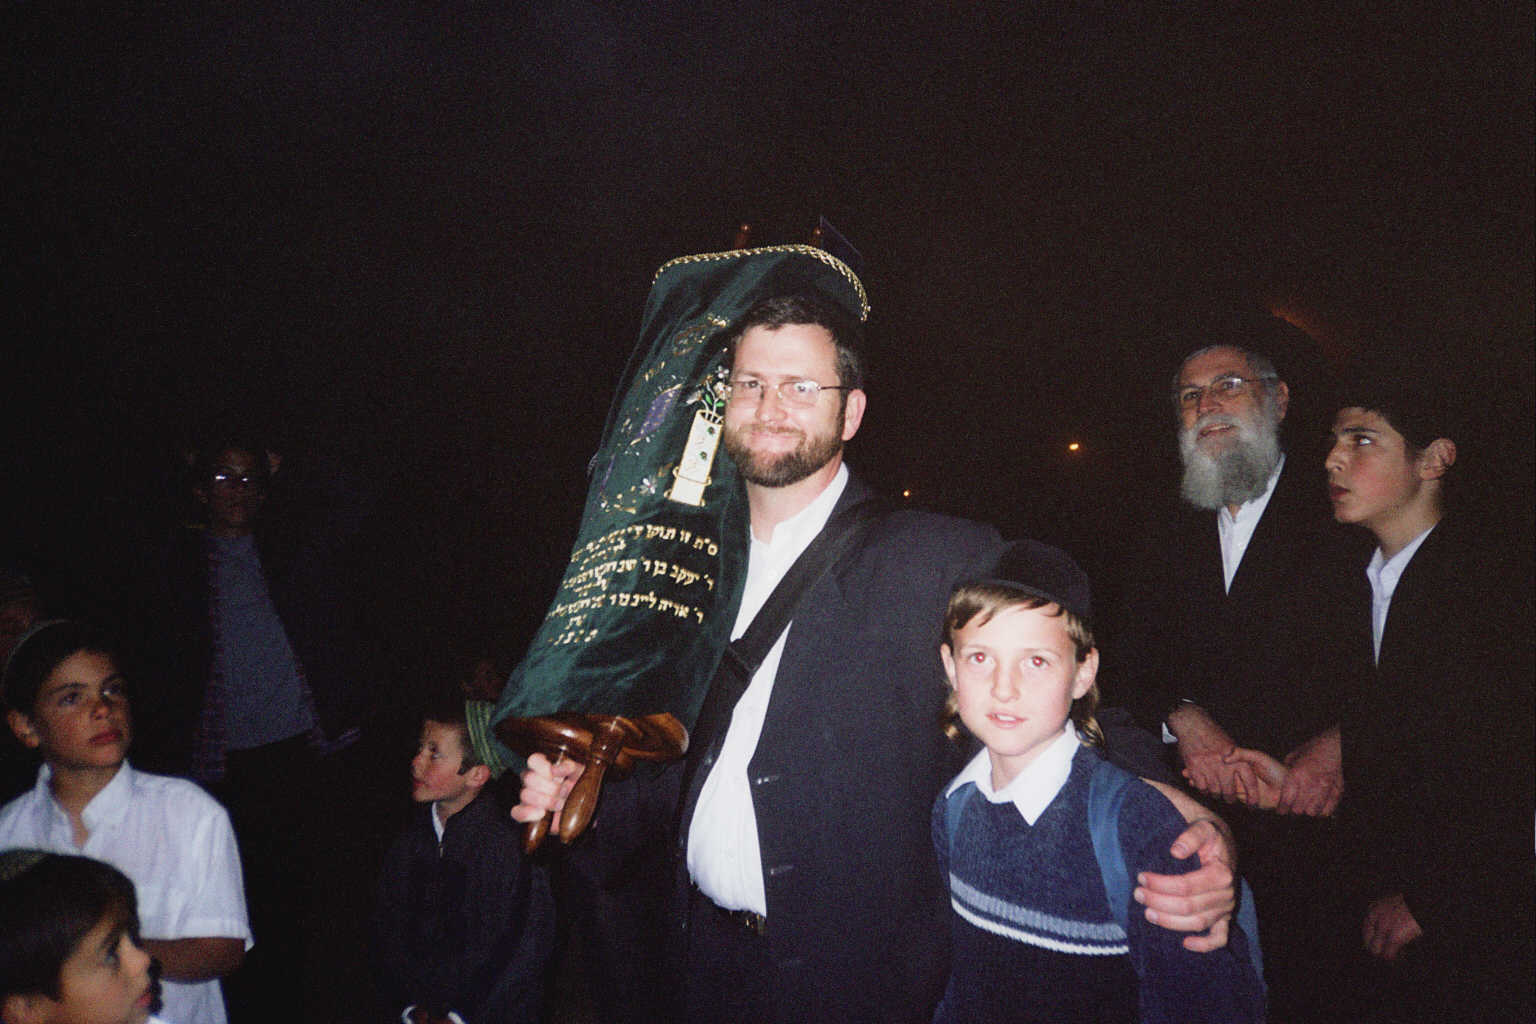 The Sefer Torah Recycling Network